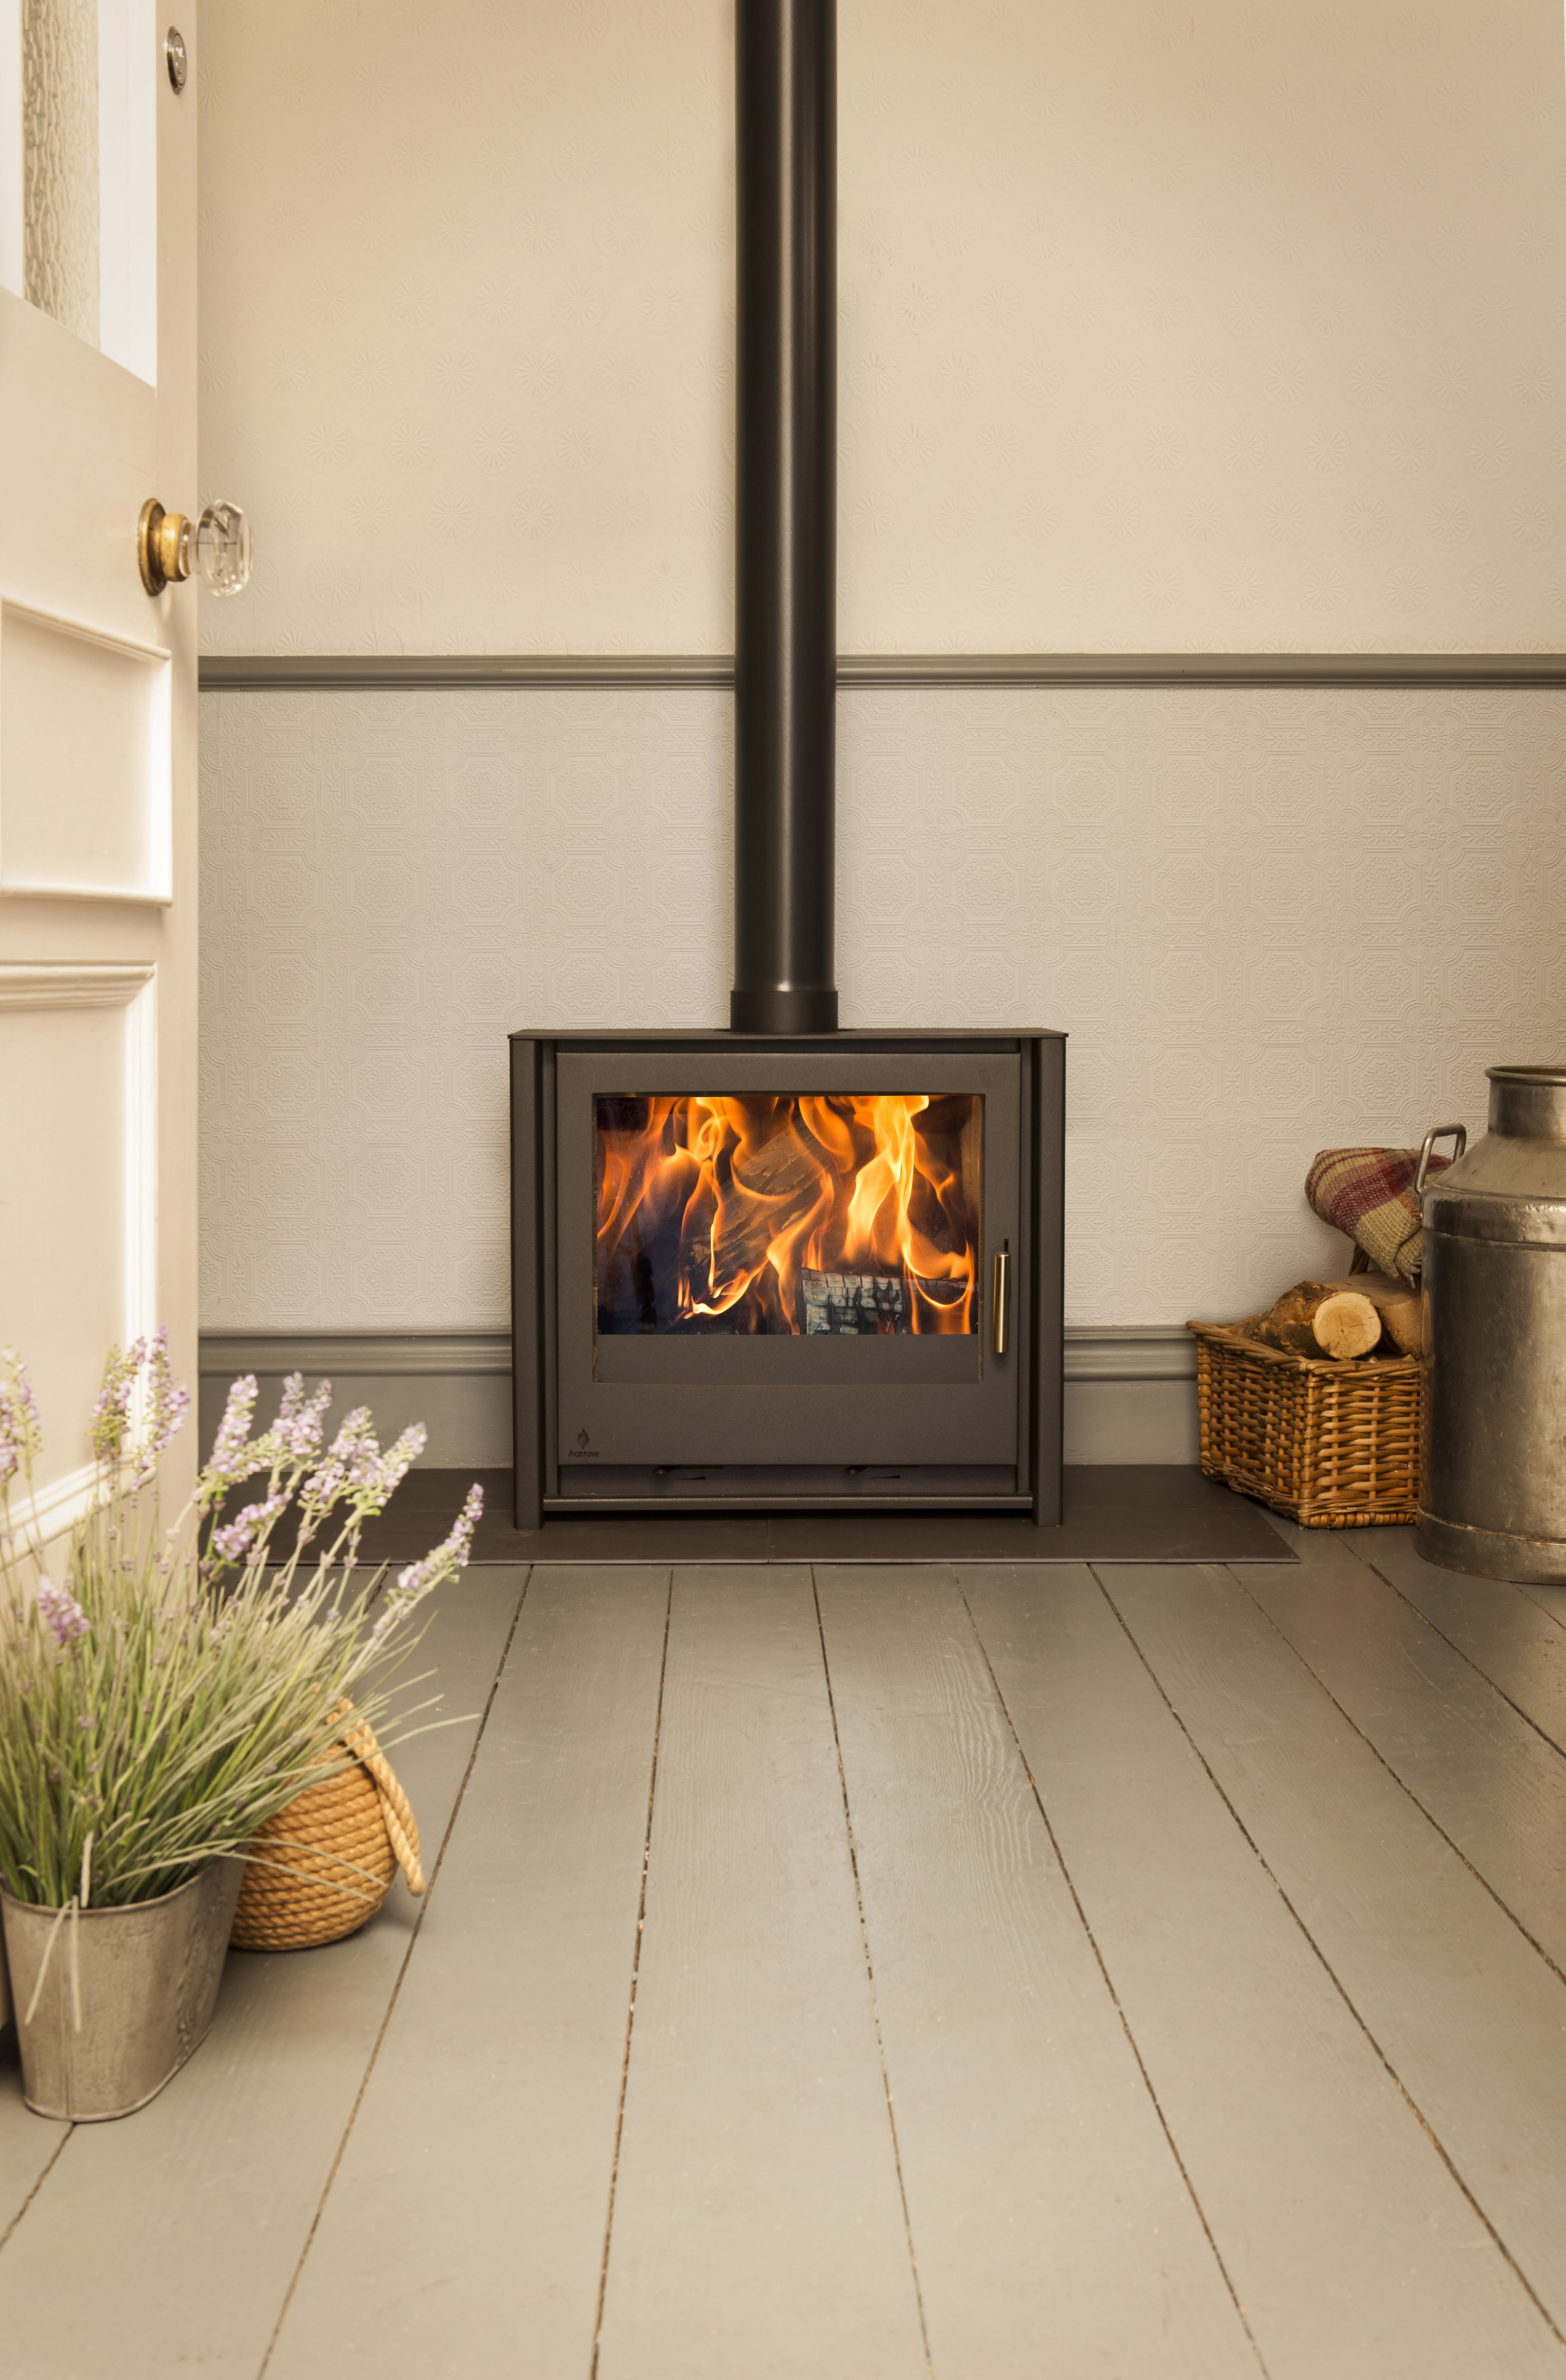 Aarrow i600f slimline This is a contemporary freestanding wood